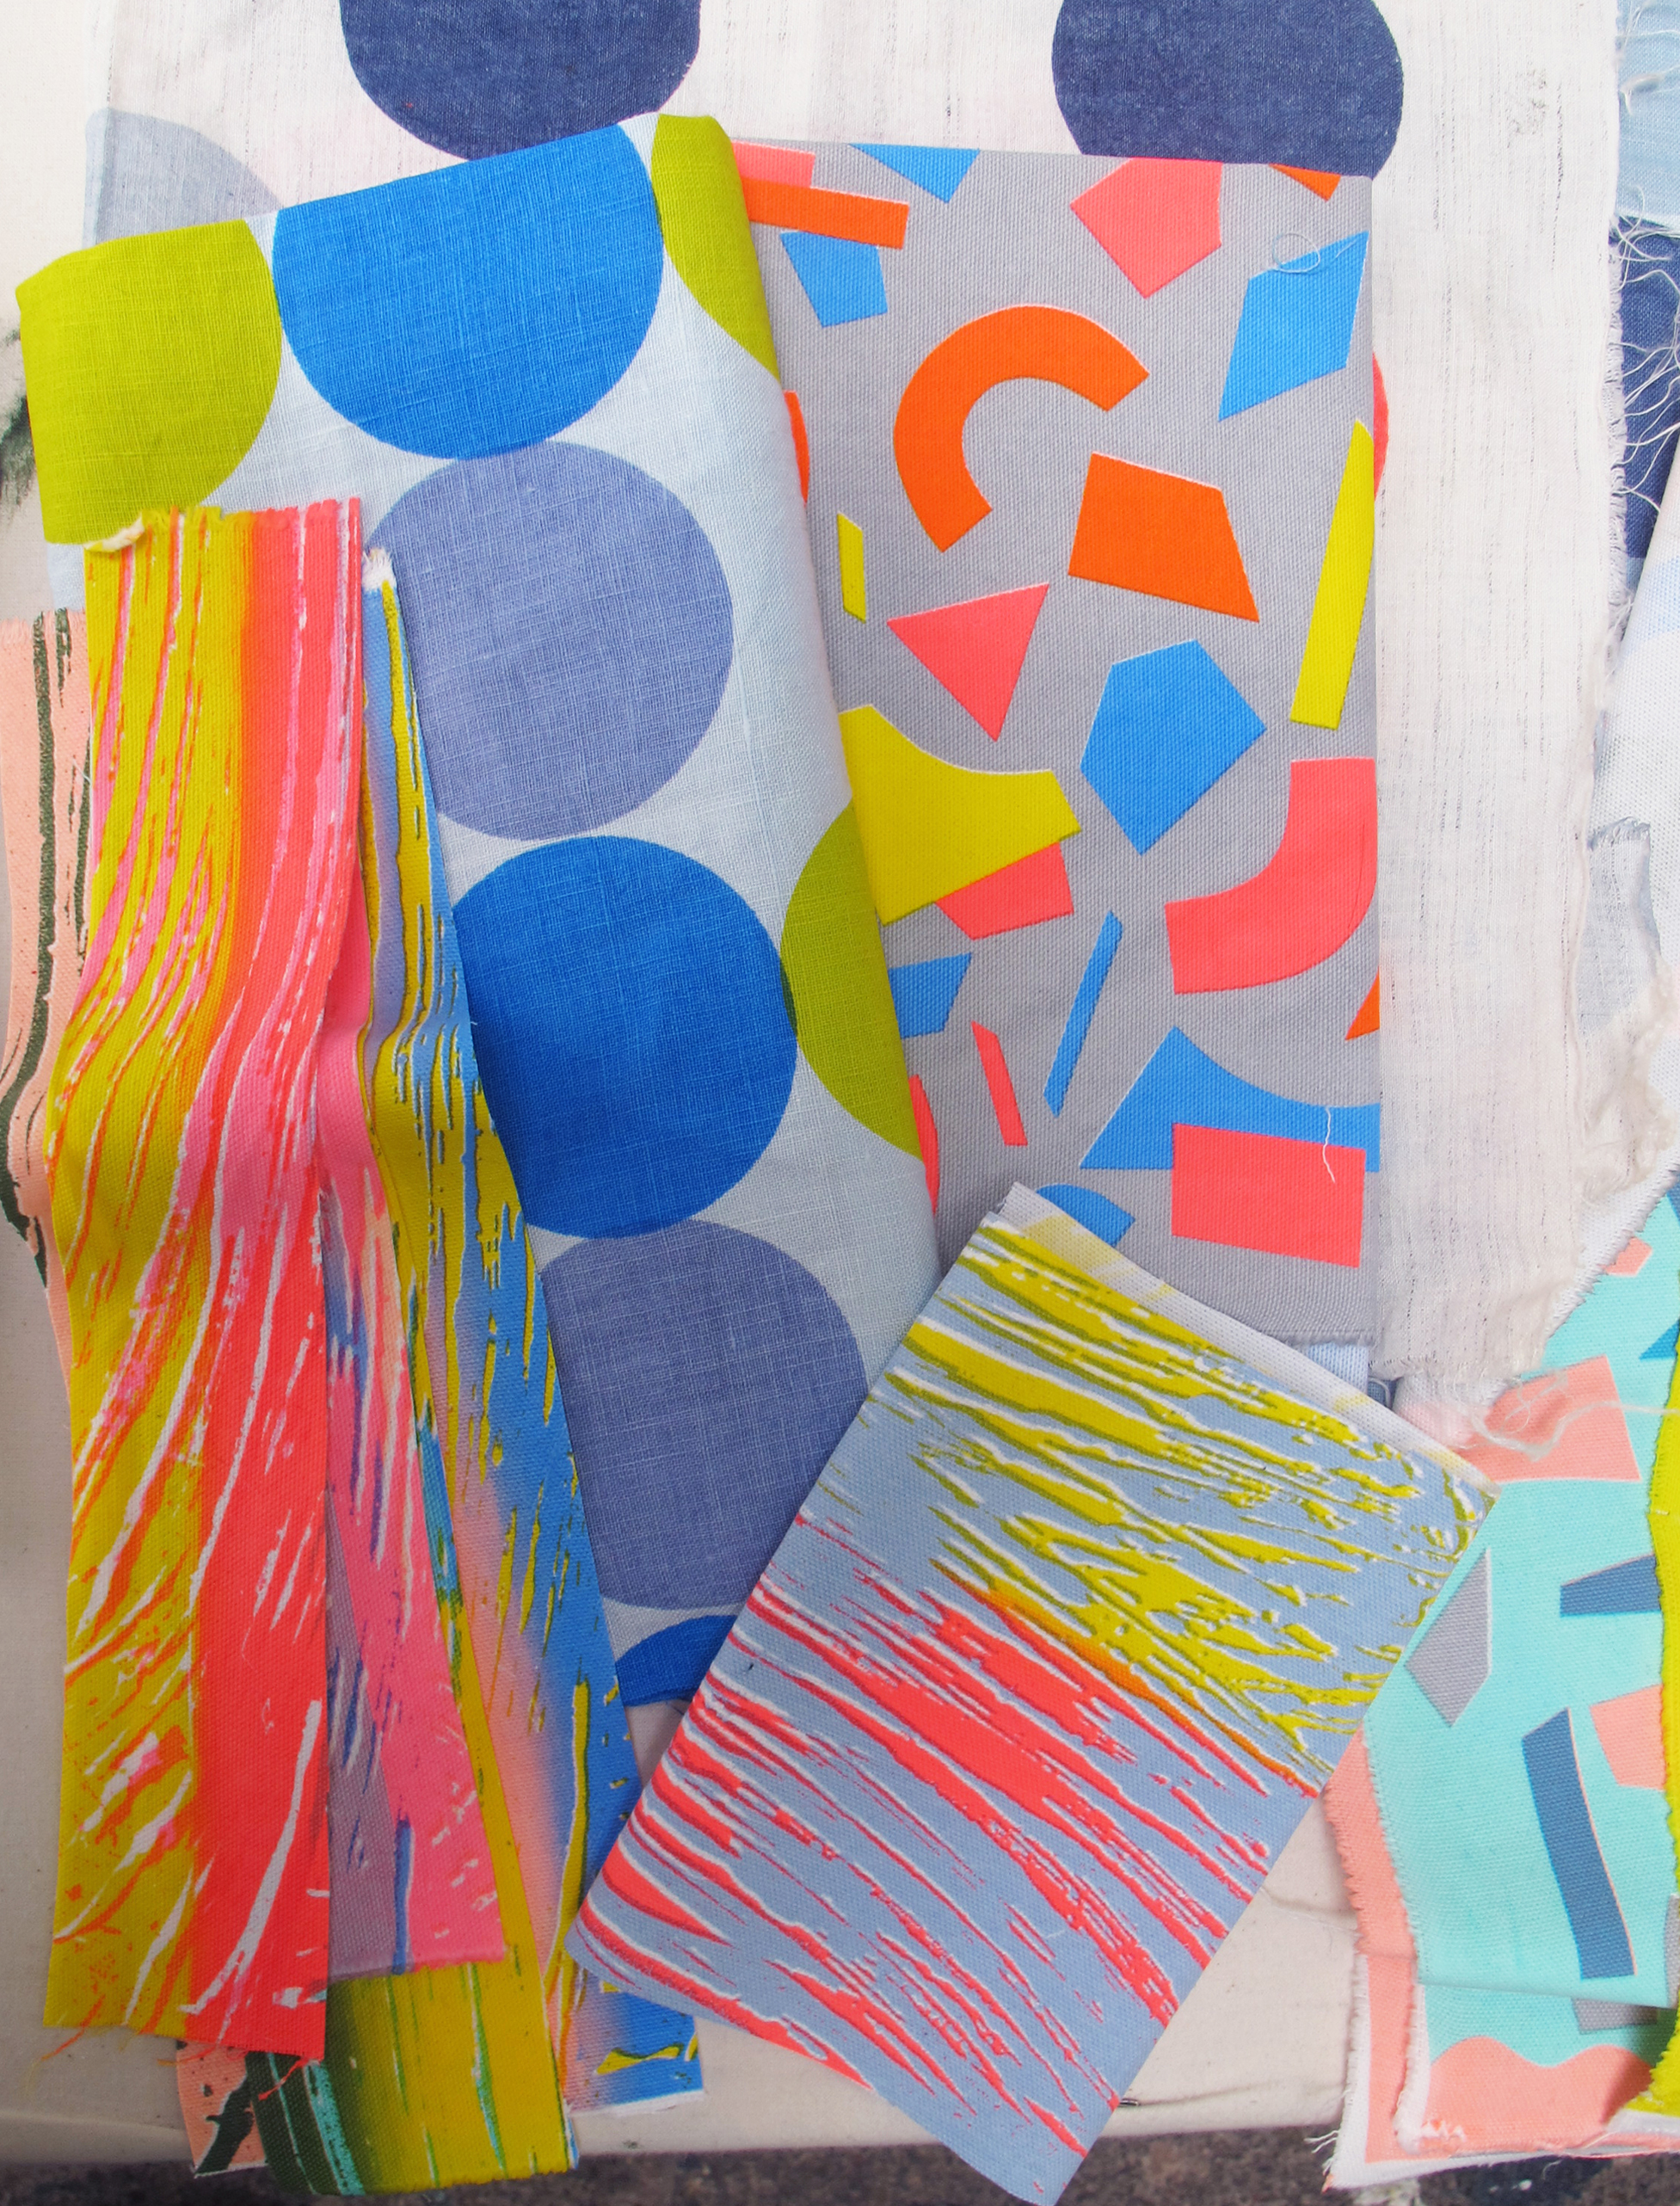 'Kangan's print samples for her new collection'